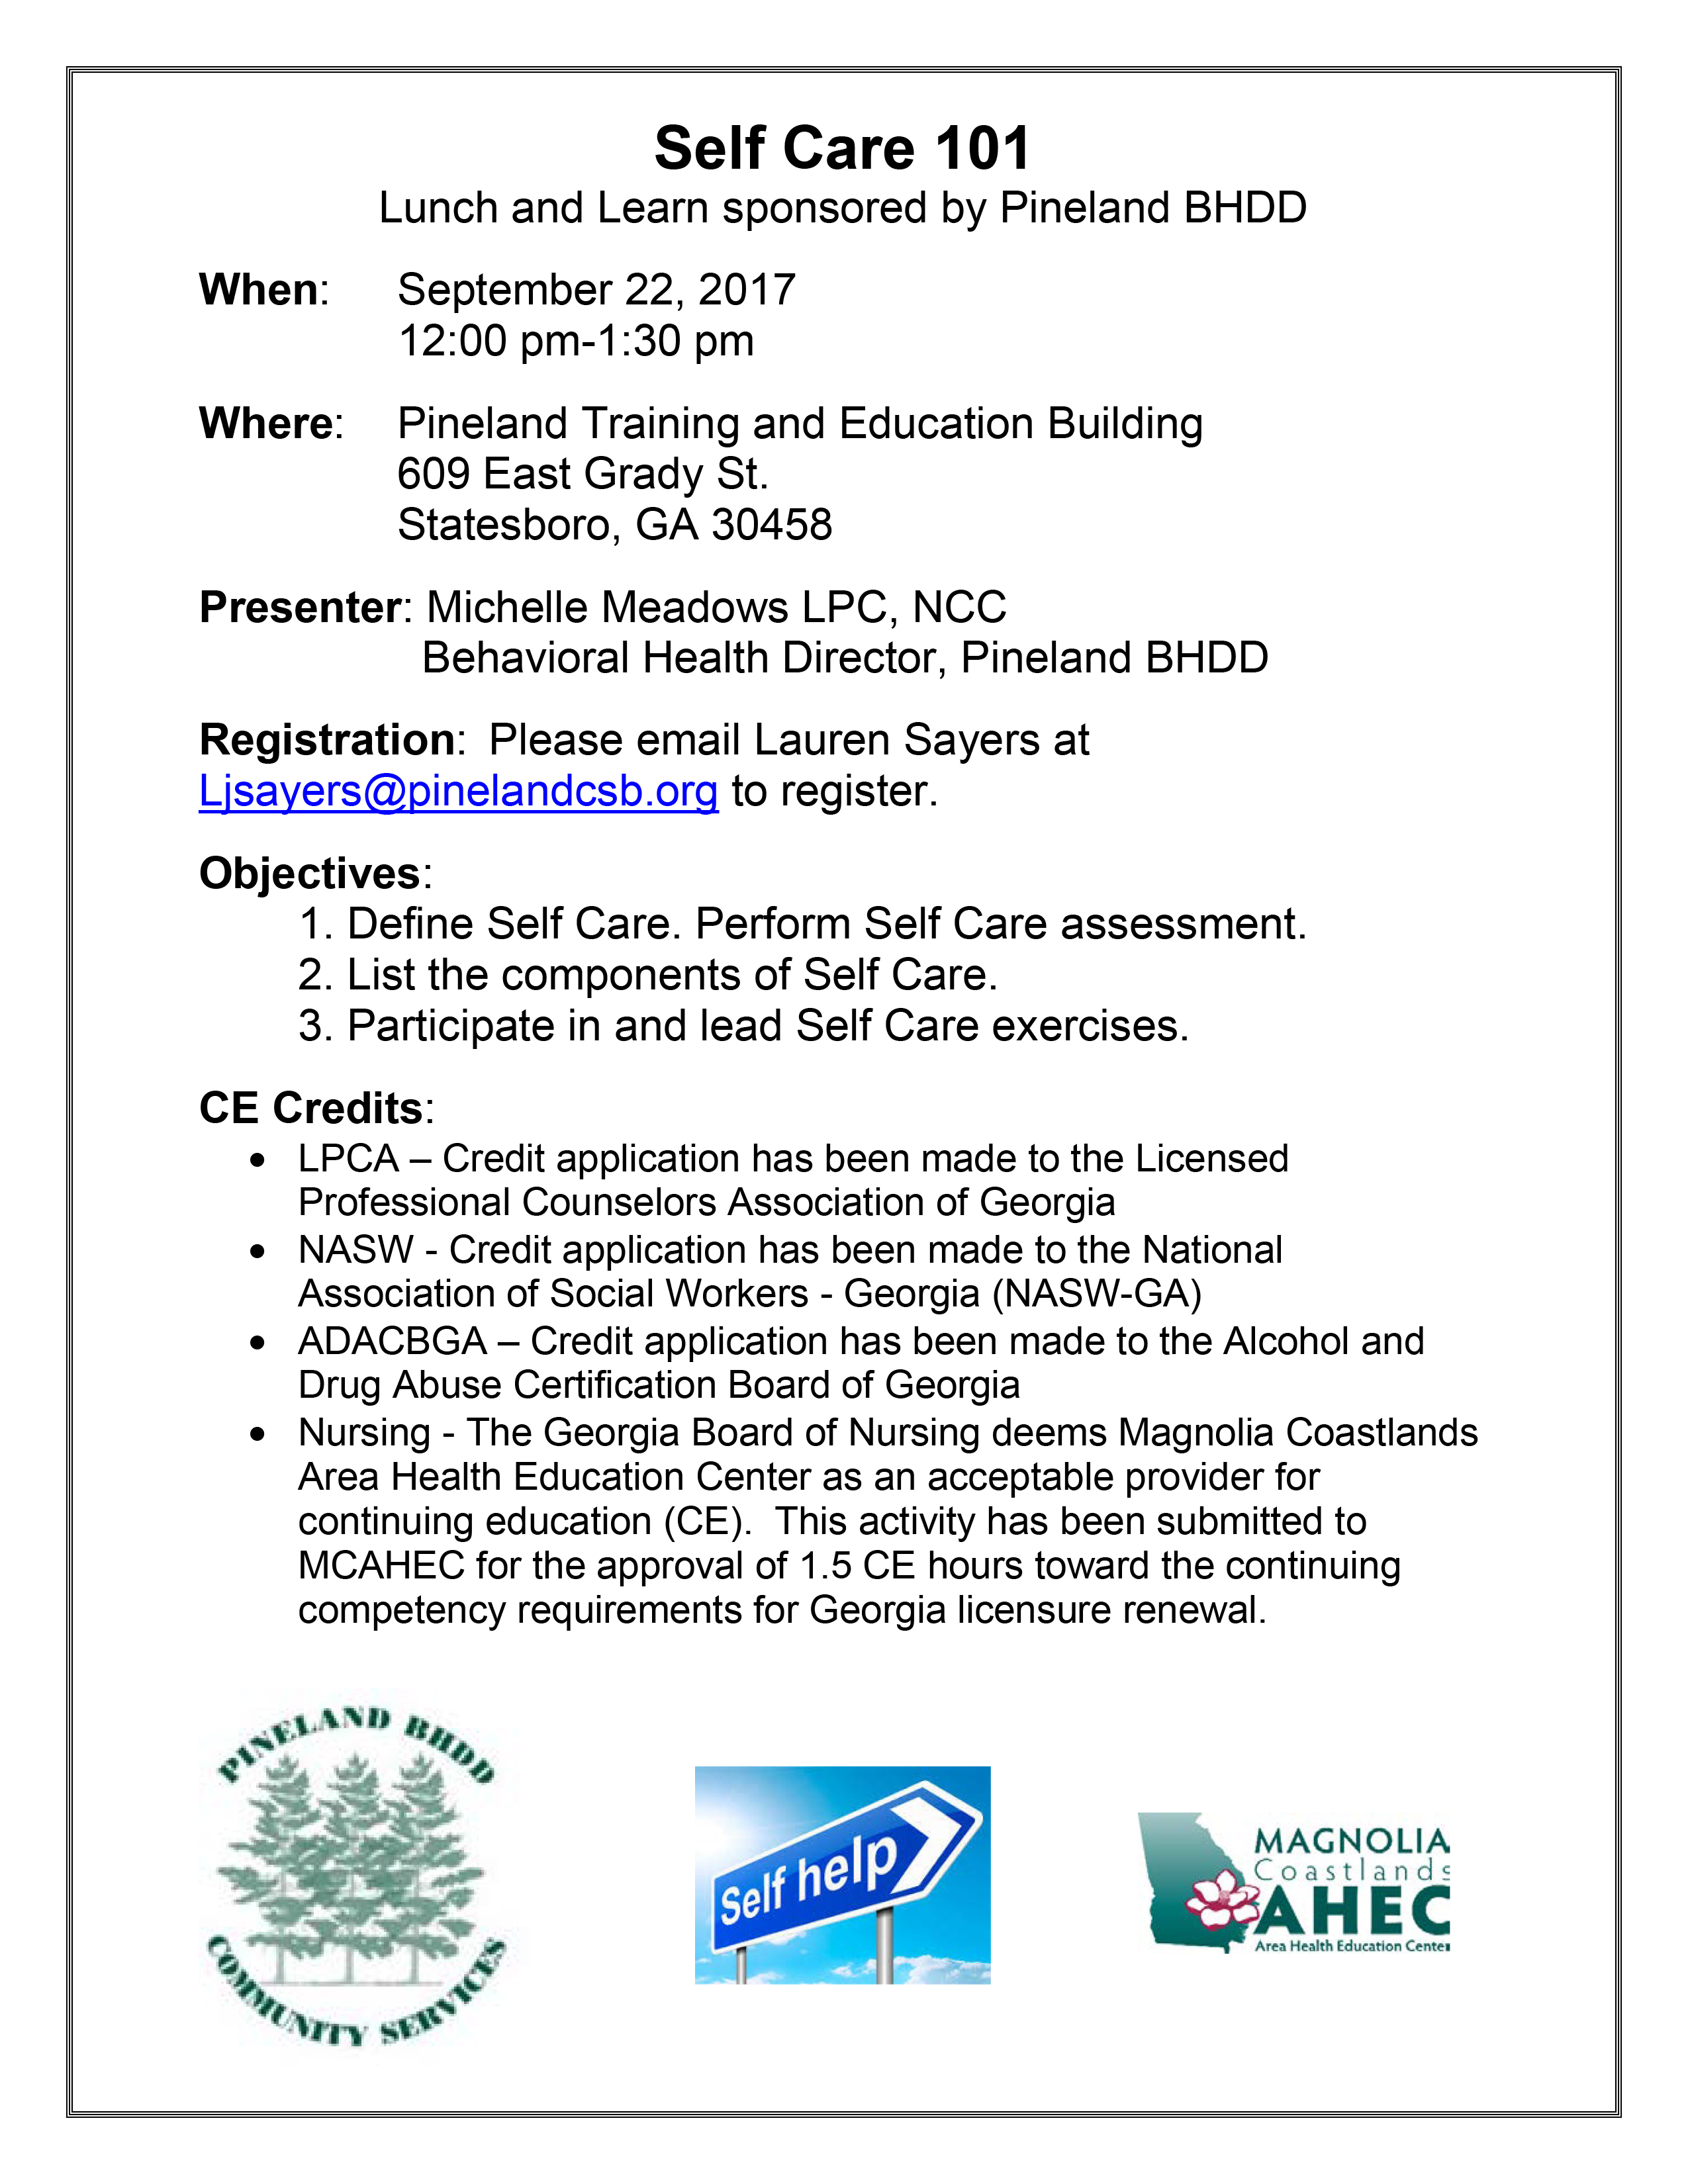 Self Care Lunch & Learn